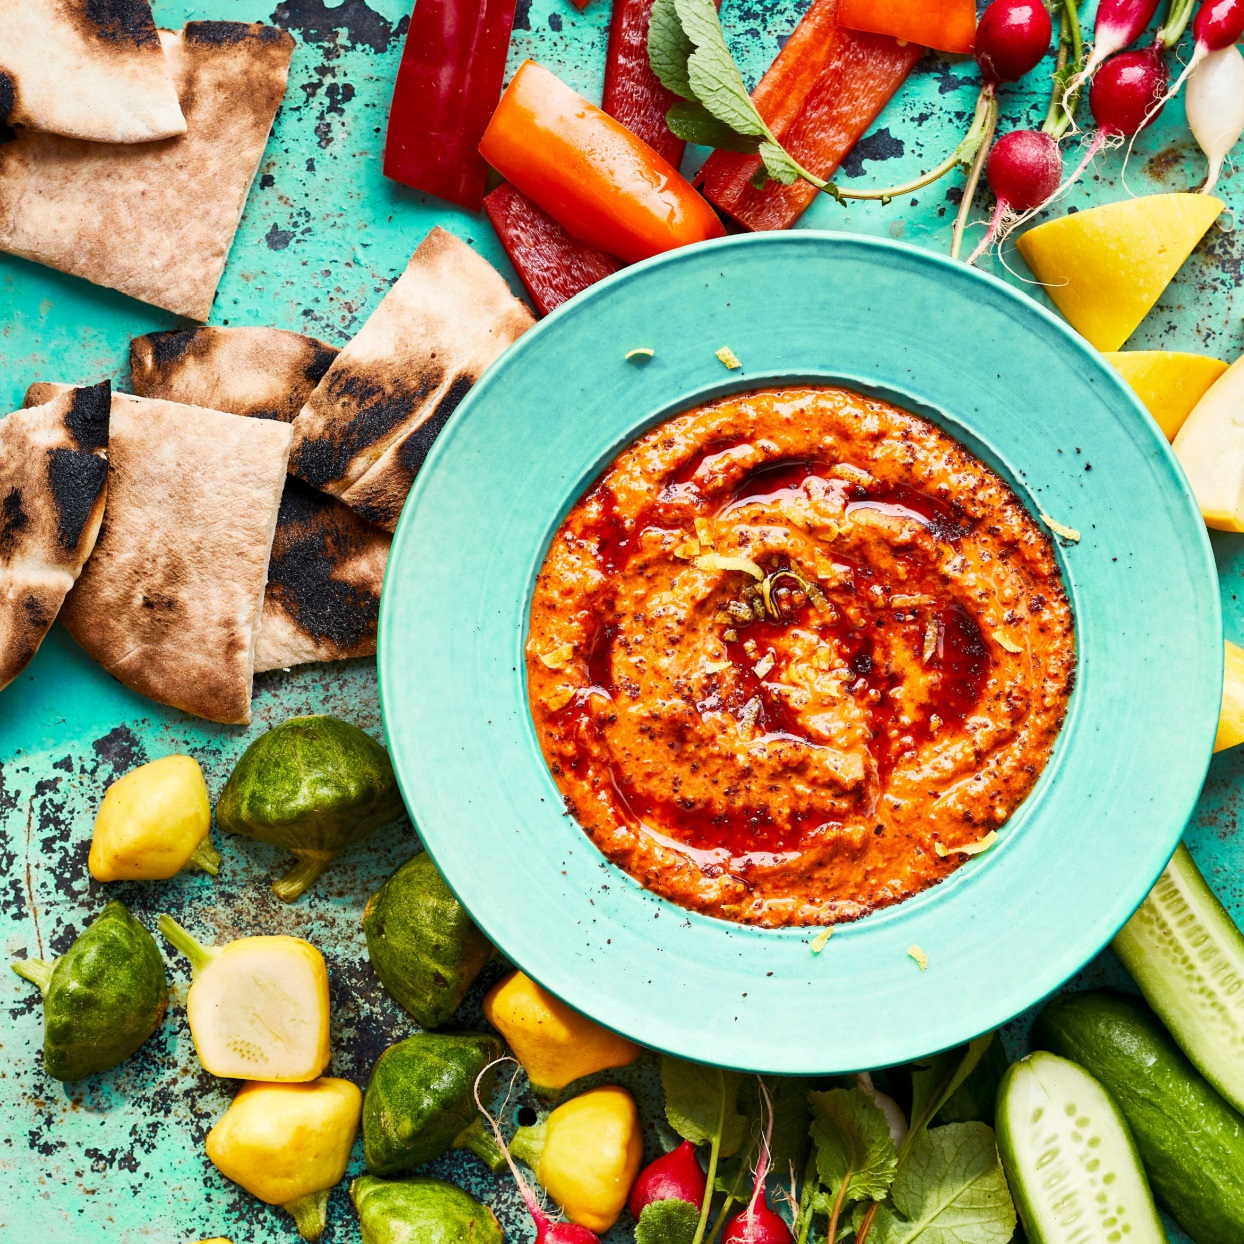 red pepper and walnut dip with vegetables and pita bread